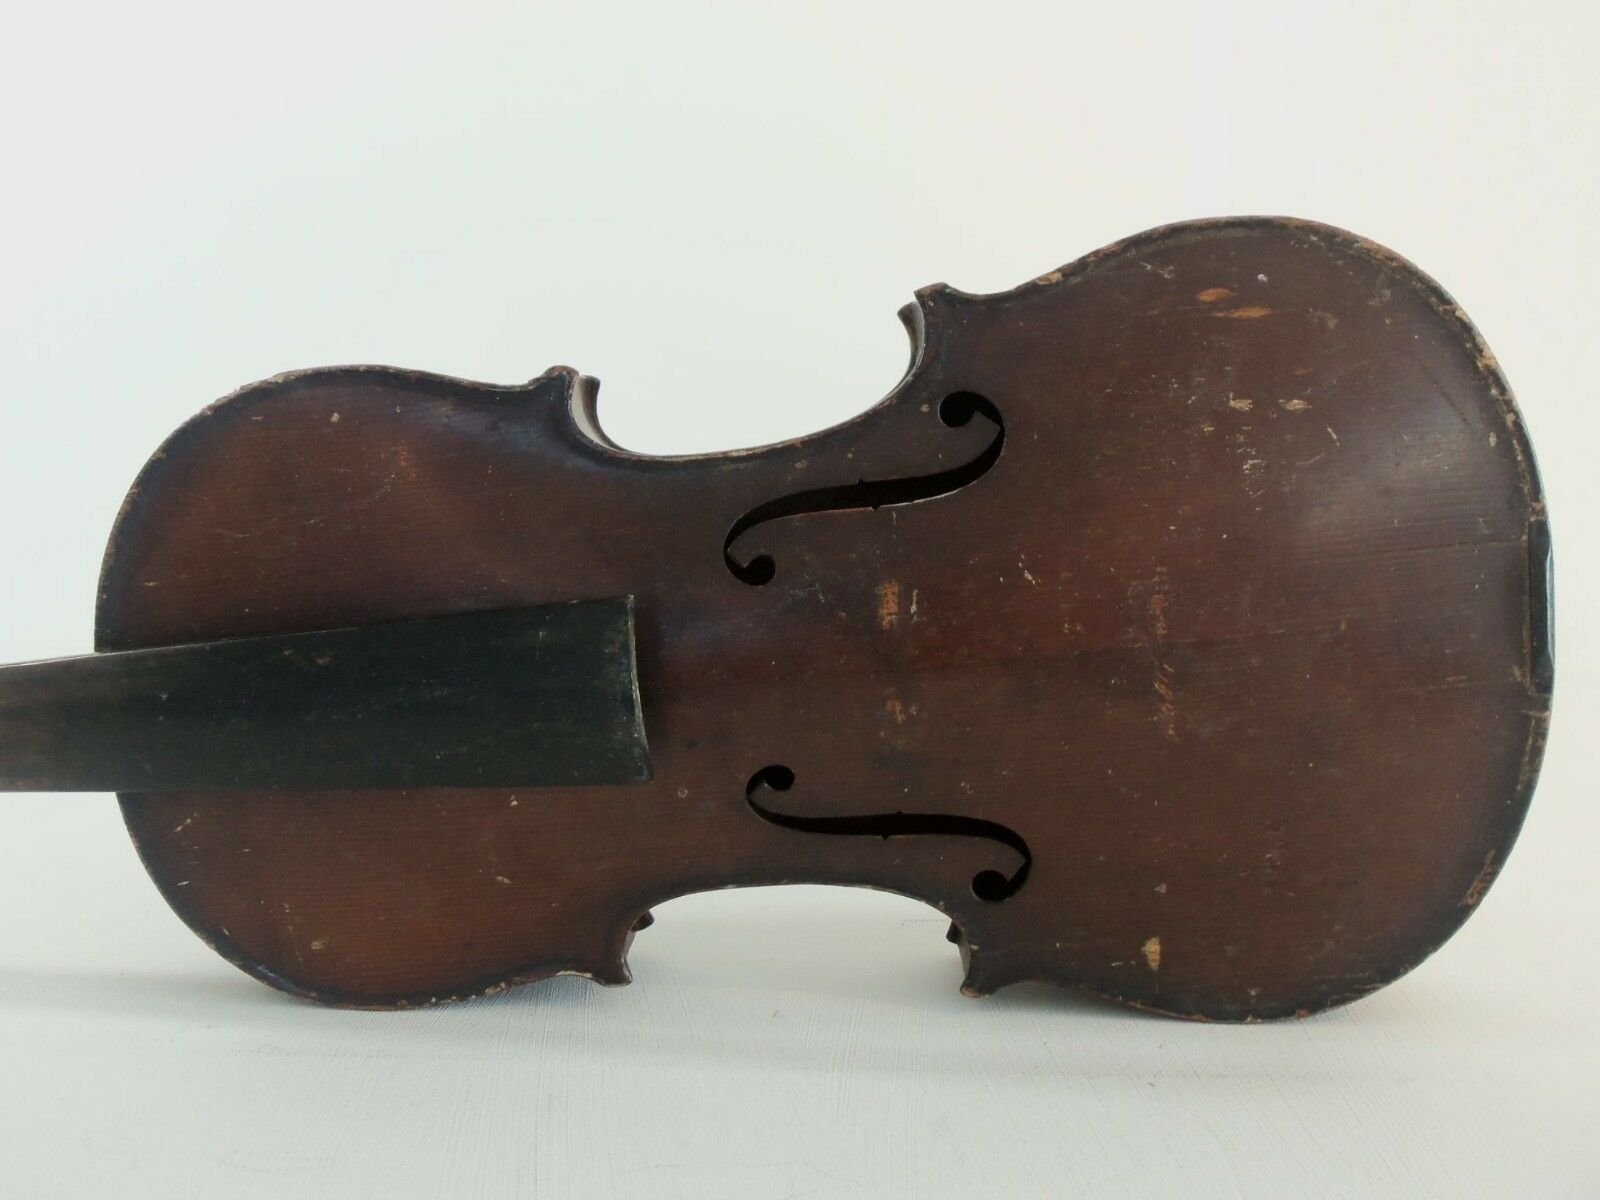 Geige Violin Violon Violino Alt Alte Deutsche Old German 1900